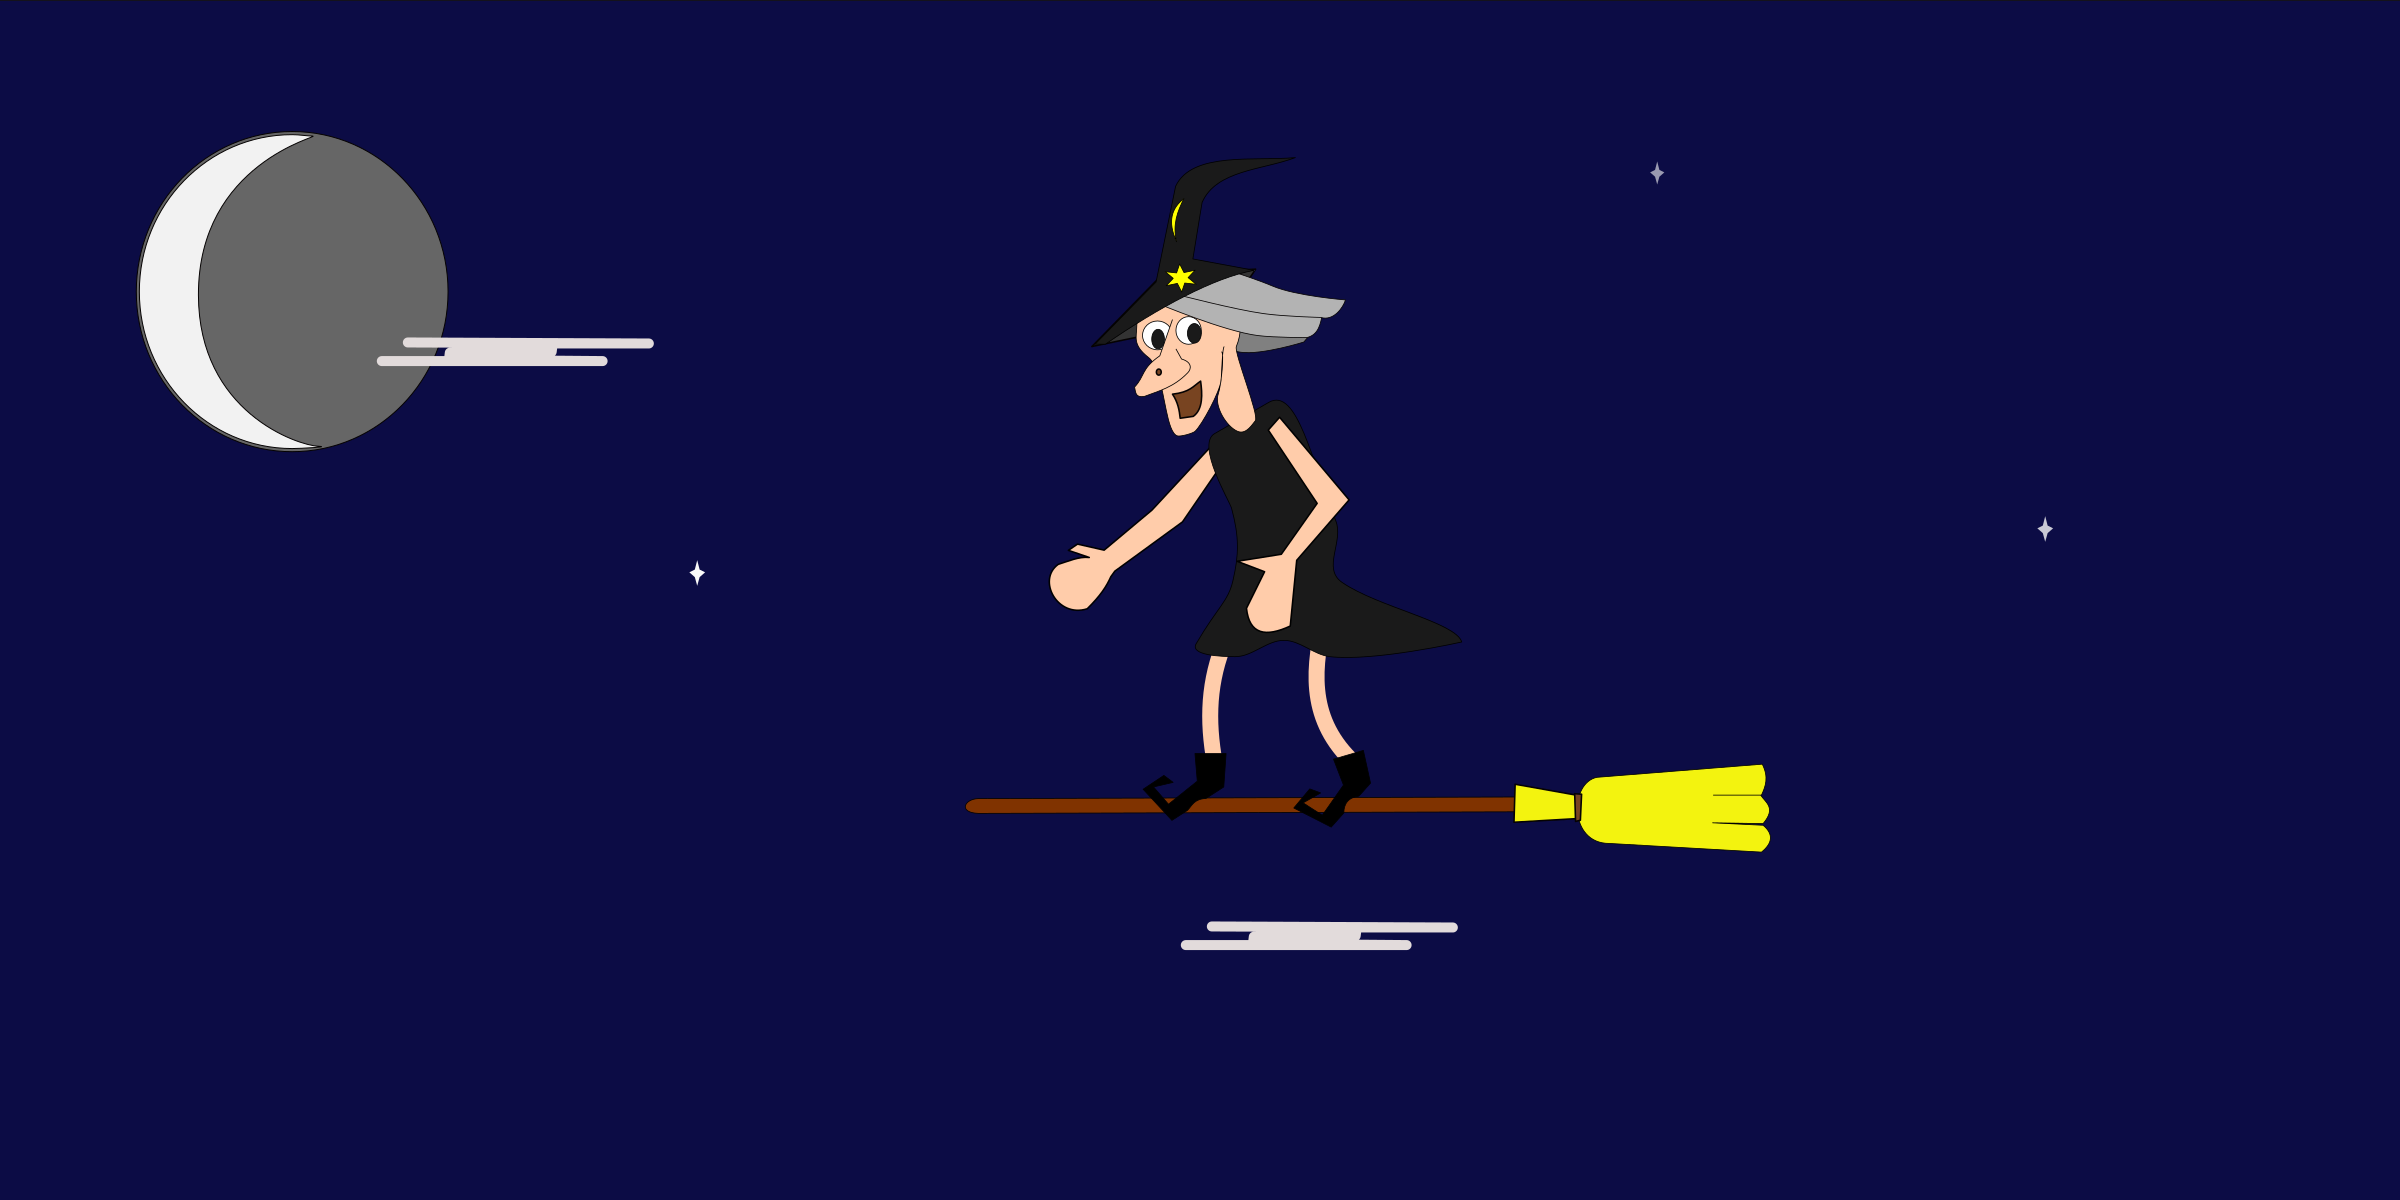 Silly old witch. Animated by aukipa